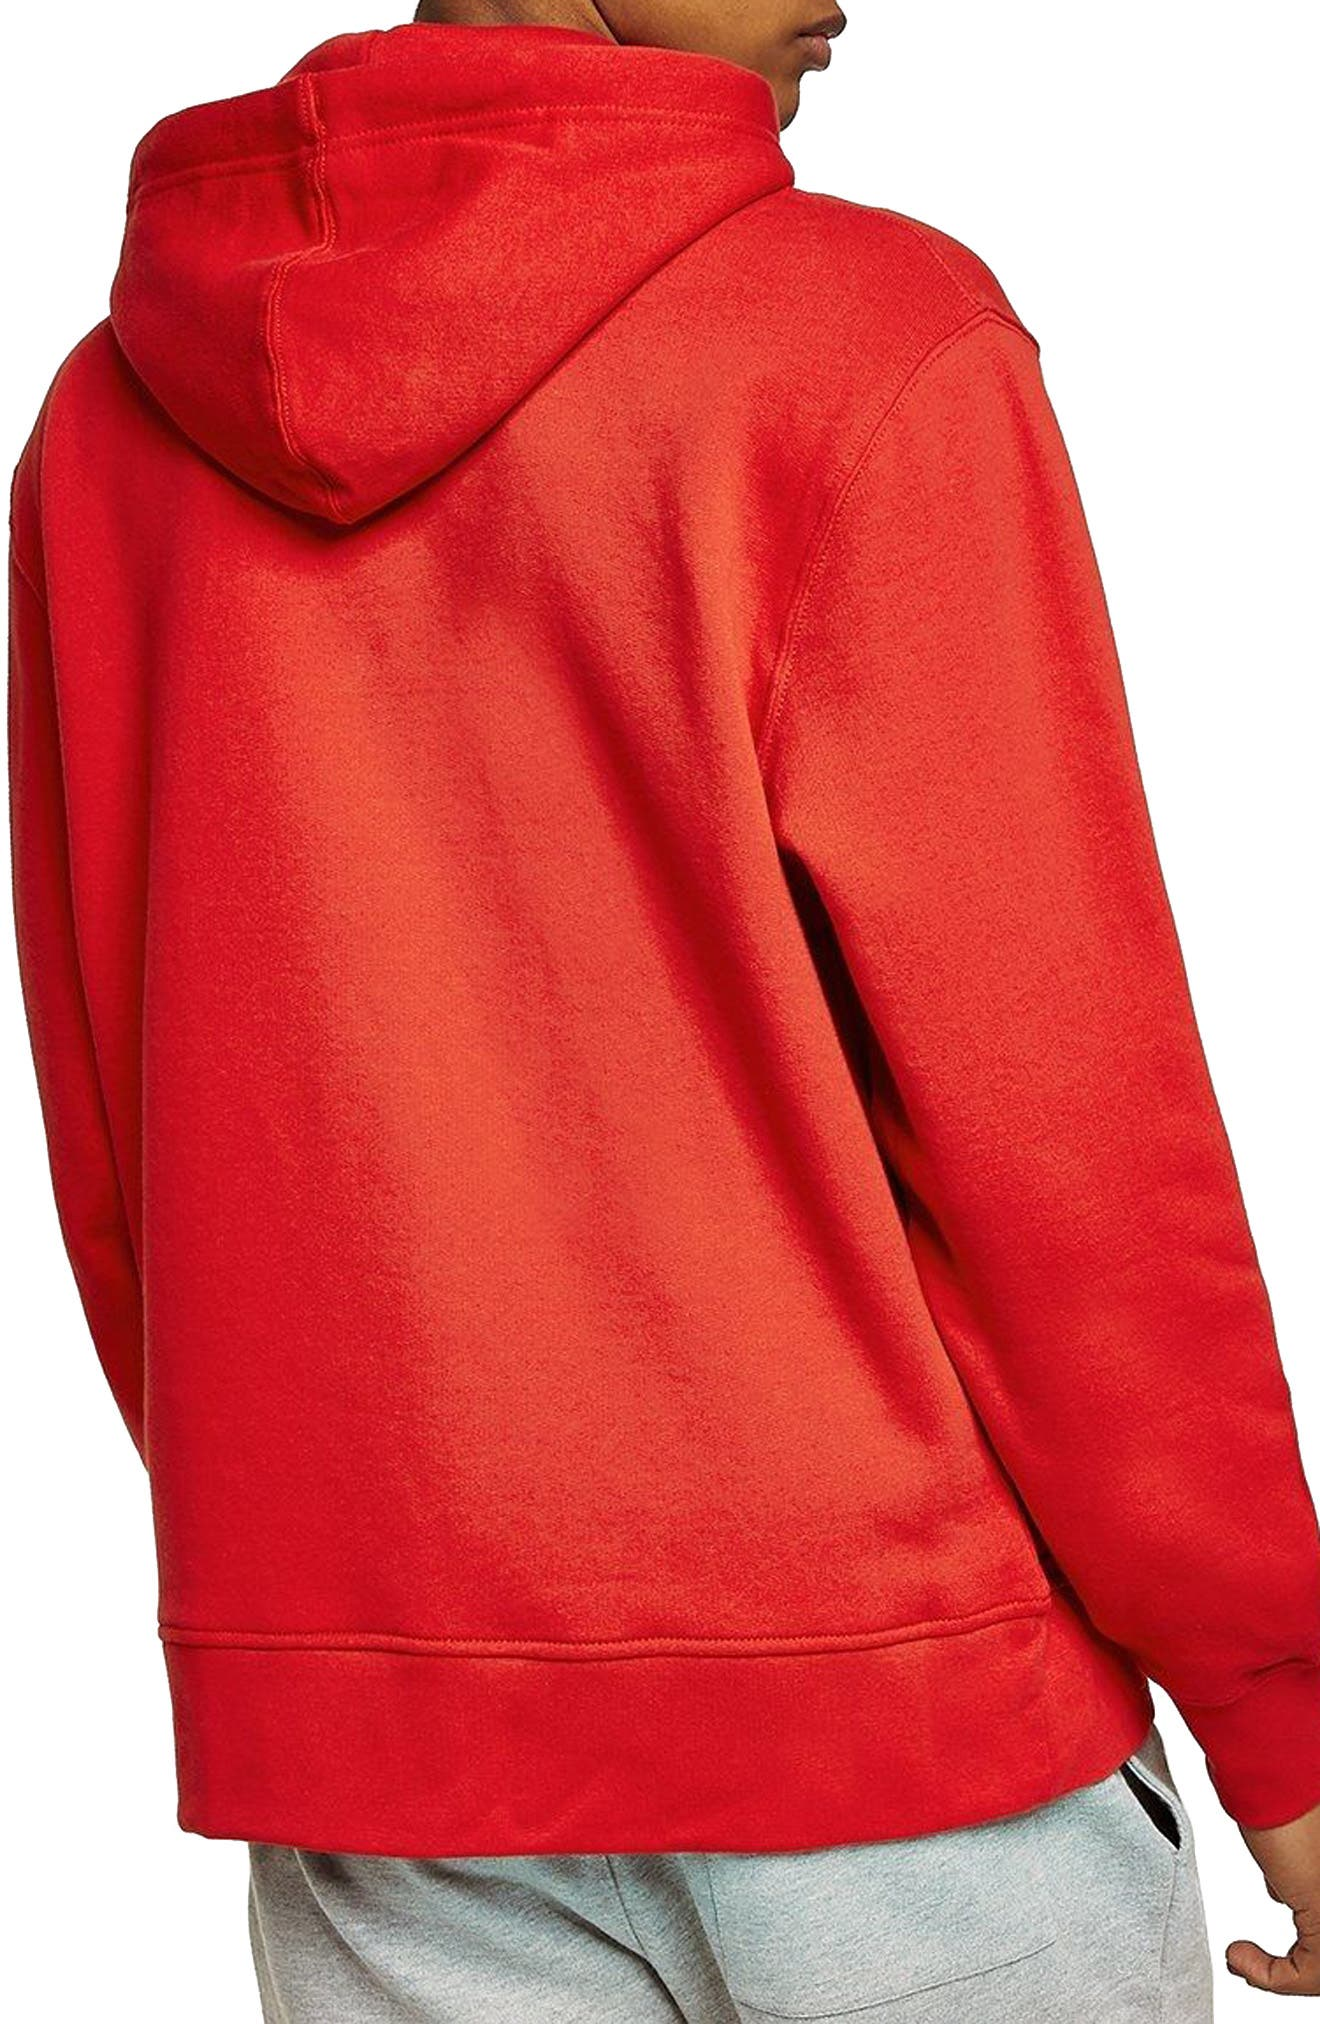 Classic Fit Tristan Thanks Embroidered Hoodie,                             Alternate thumbnail 2, color,                             600